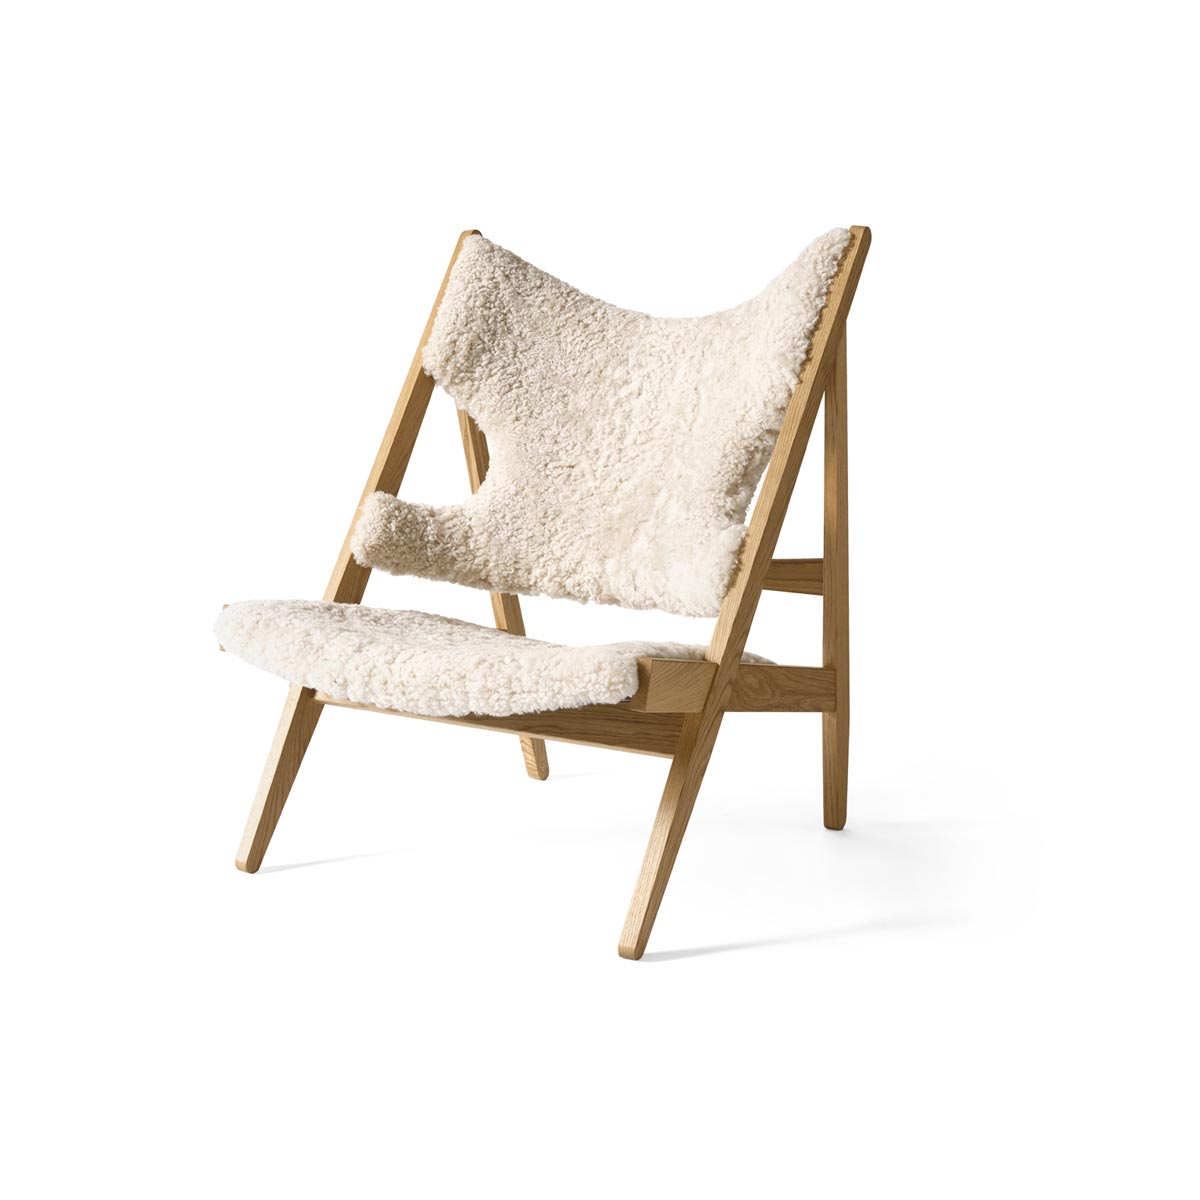 9681649 Knitting Lounge Chair Natural Oak Moonlight 21 Angle 1